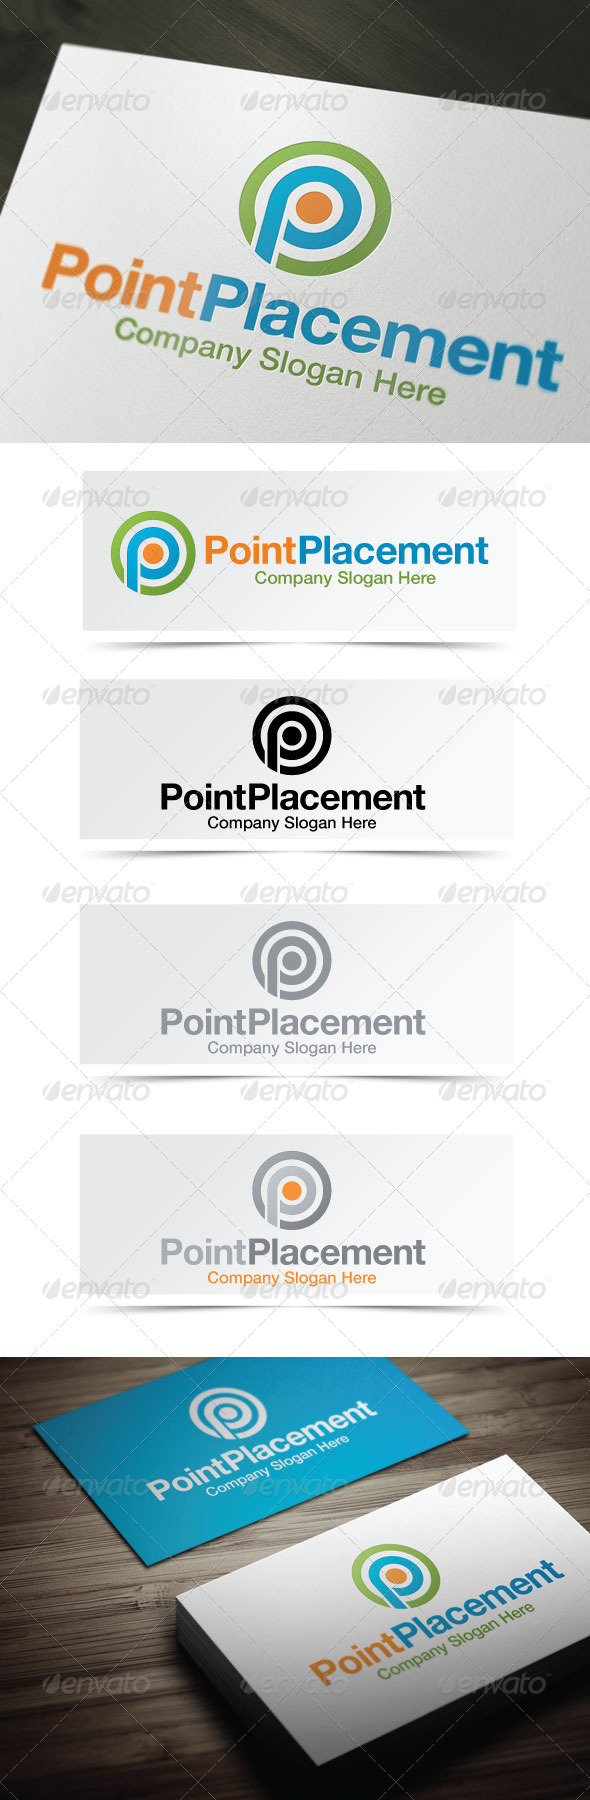 Point Placement